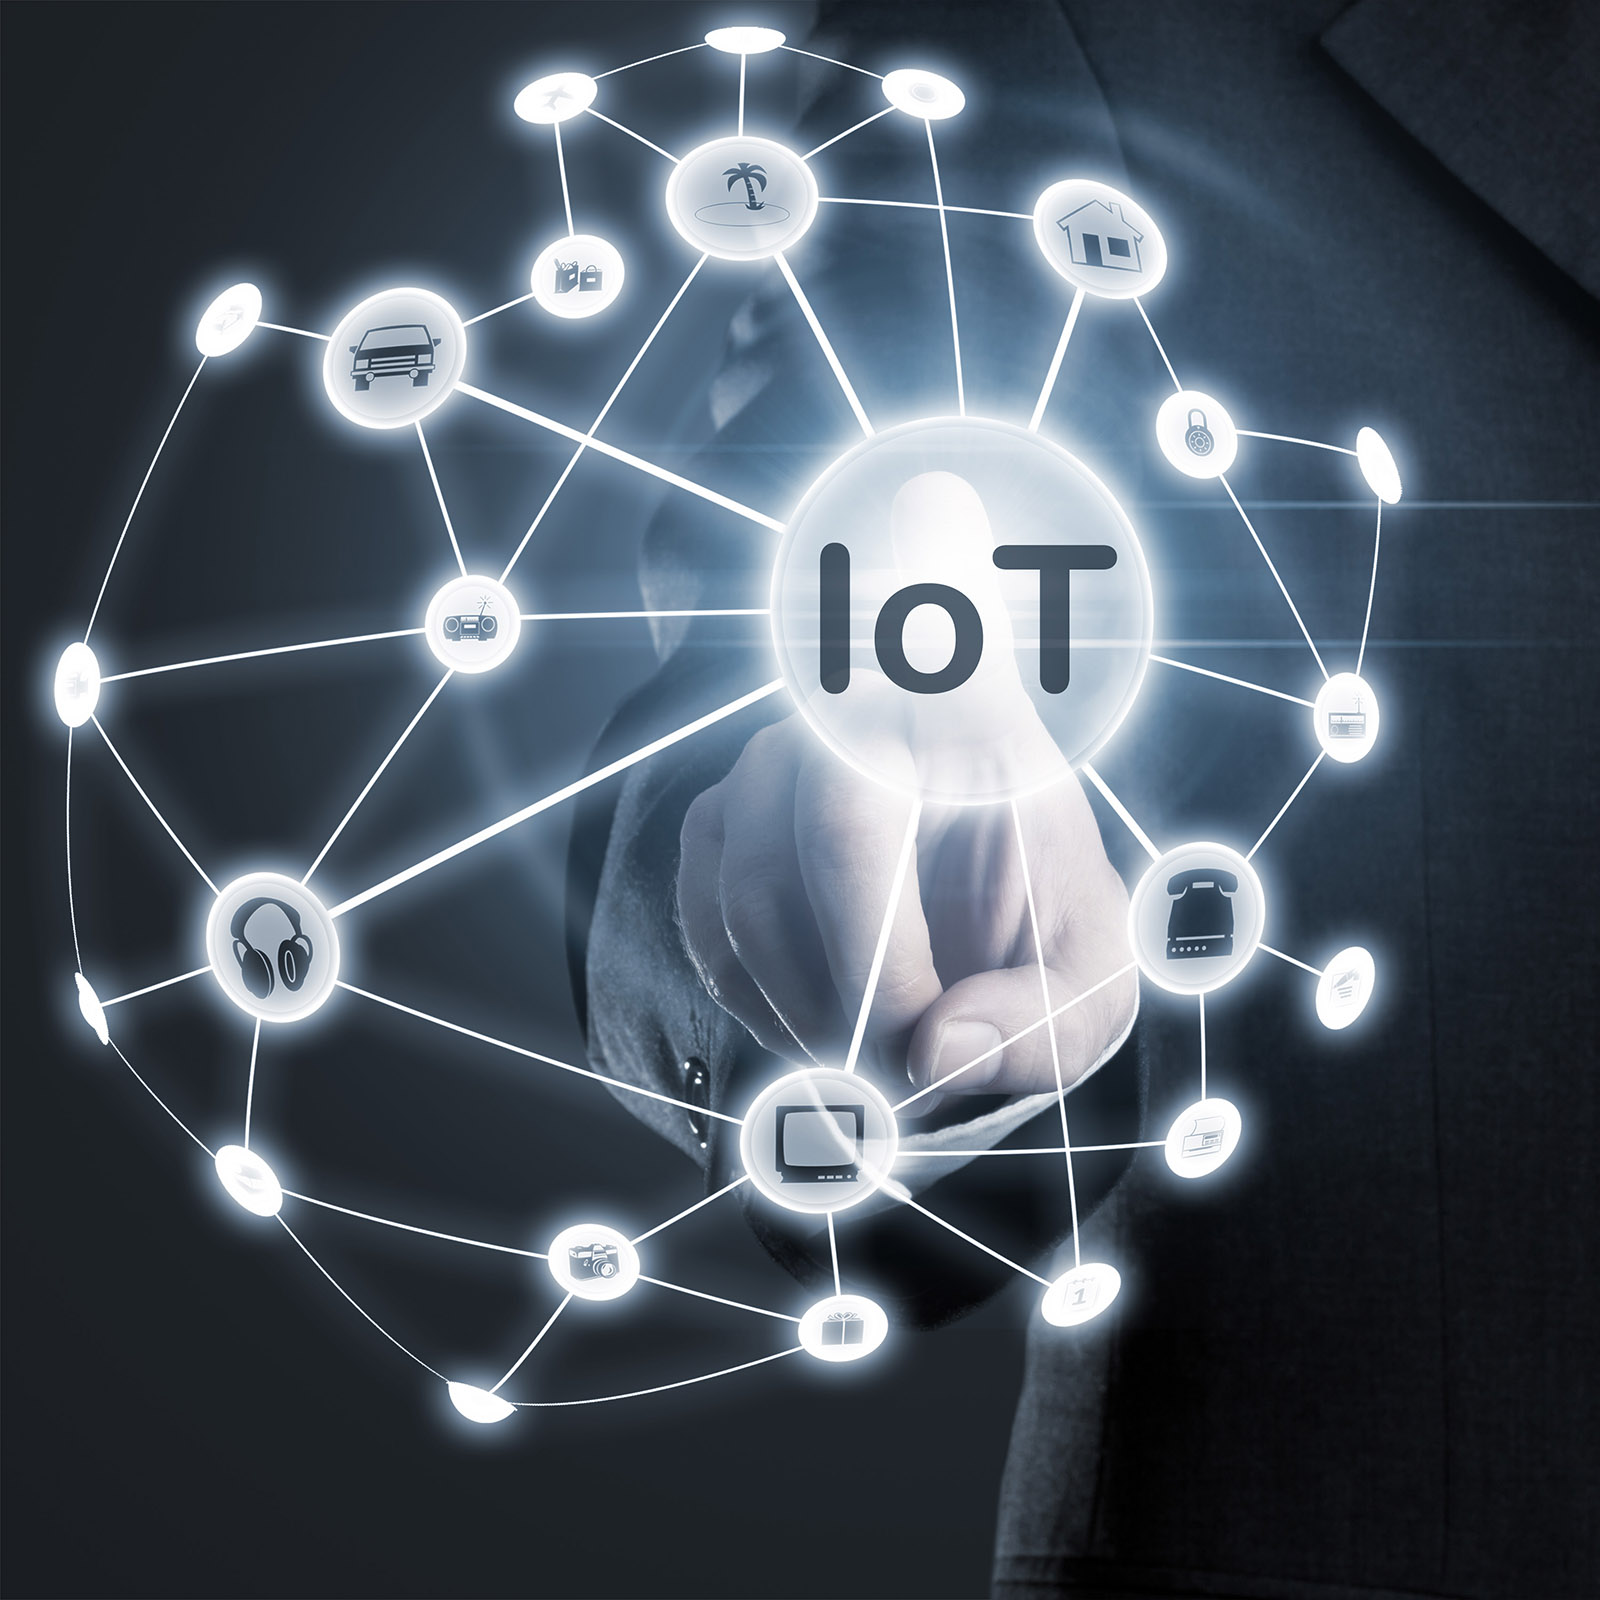 IoT (internet of things) network